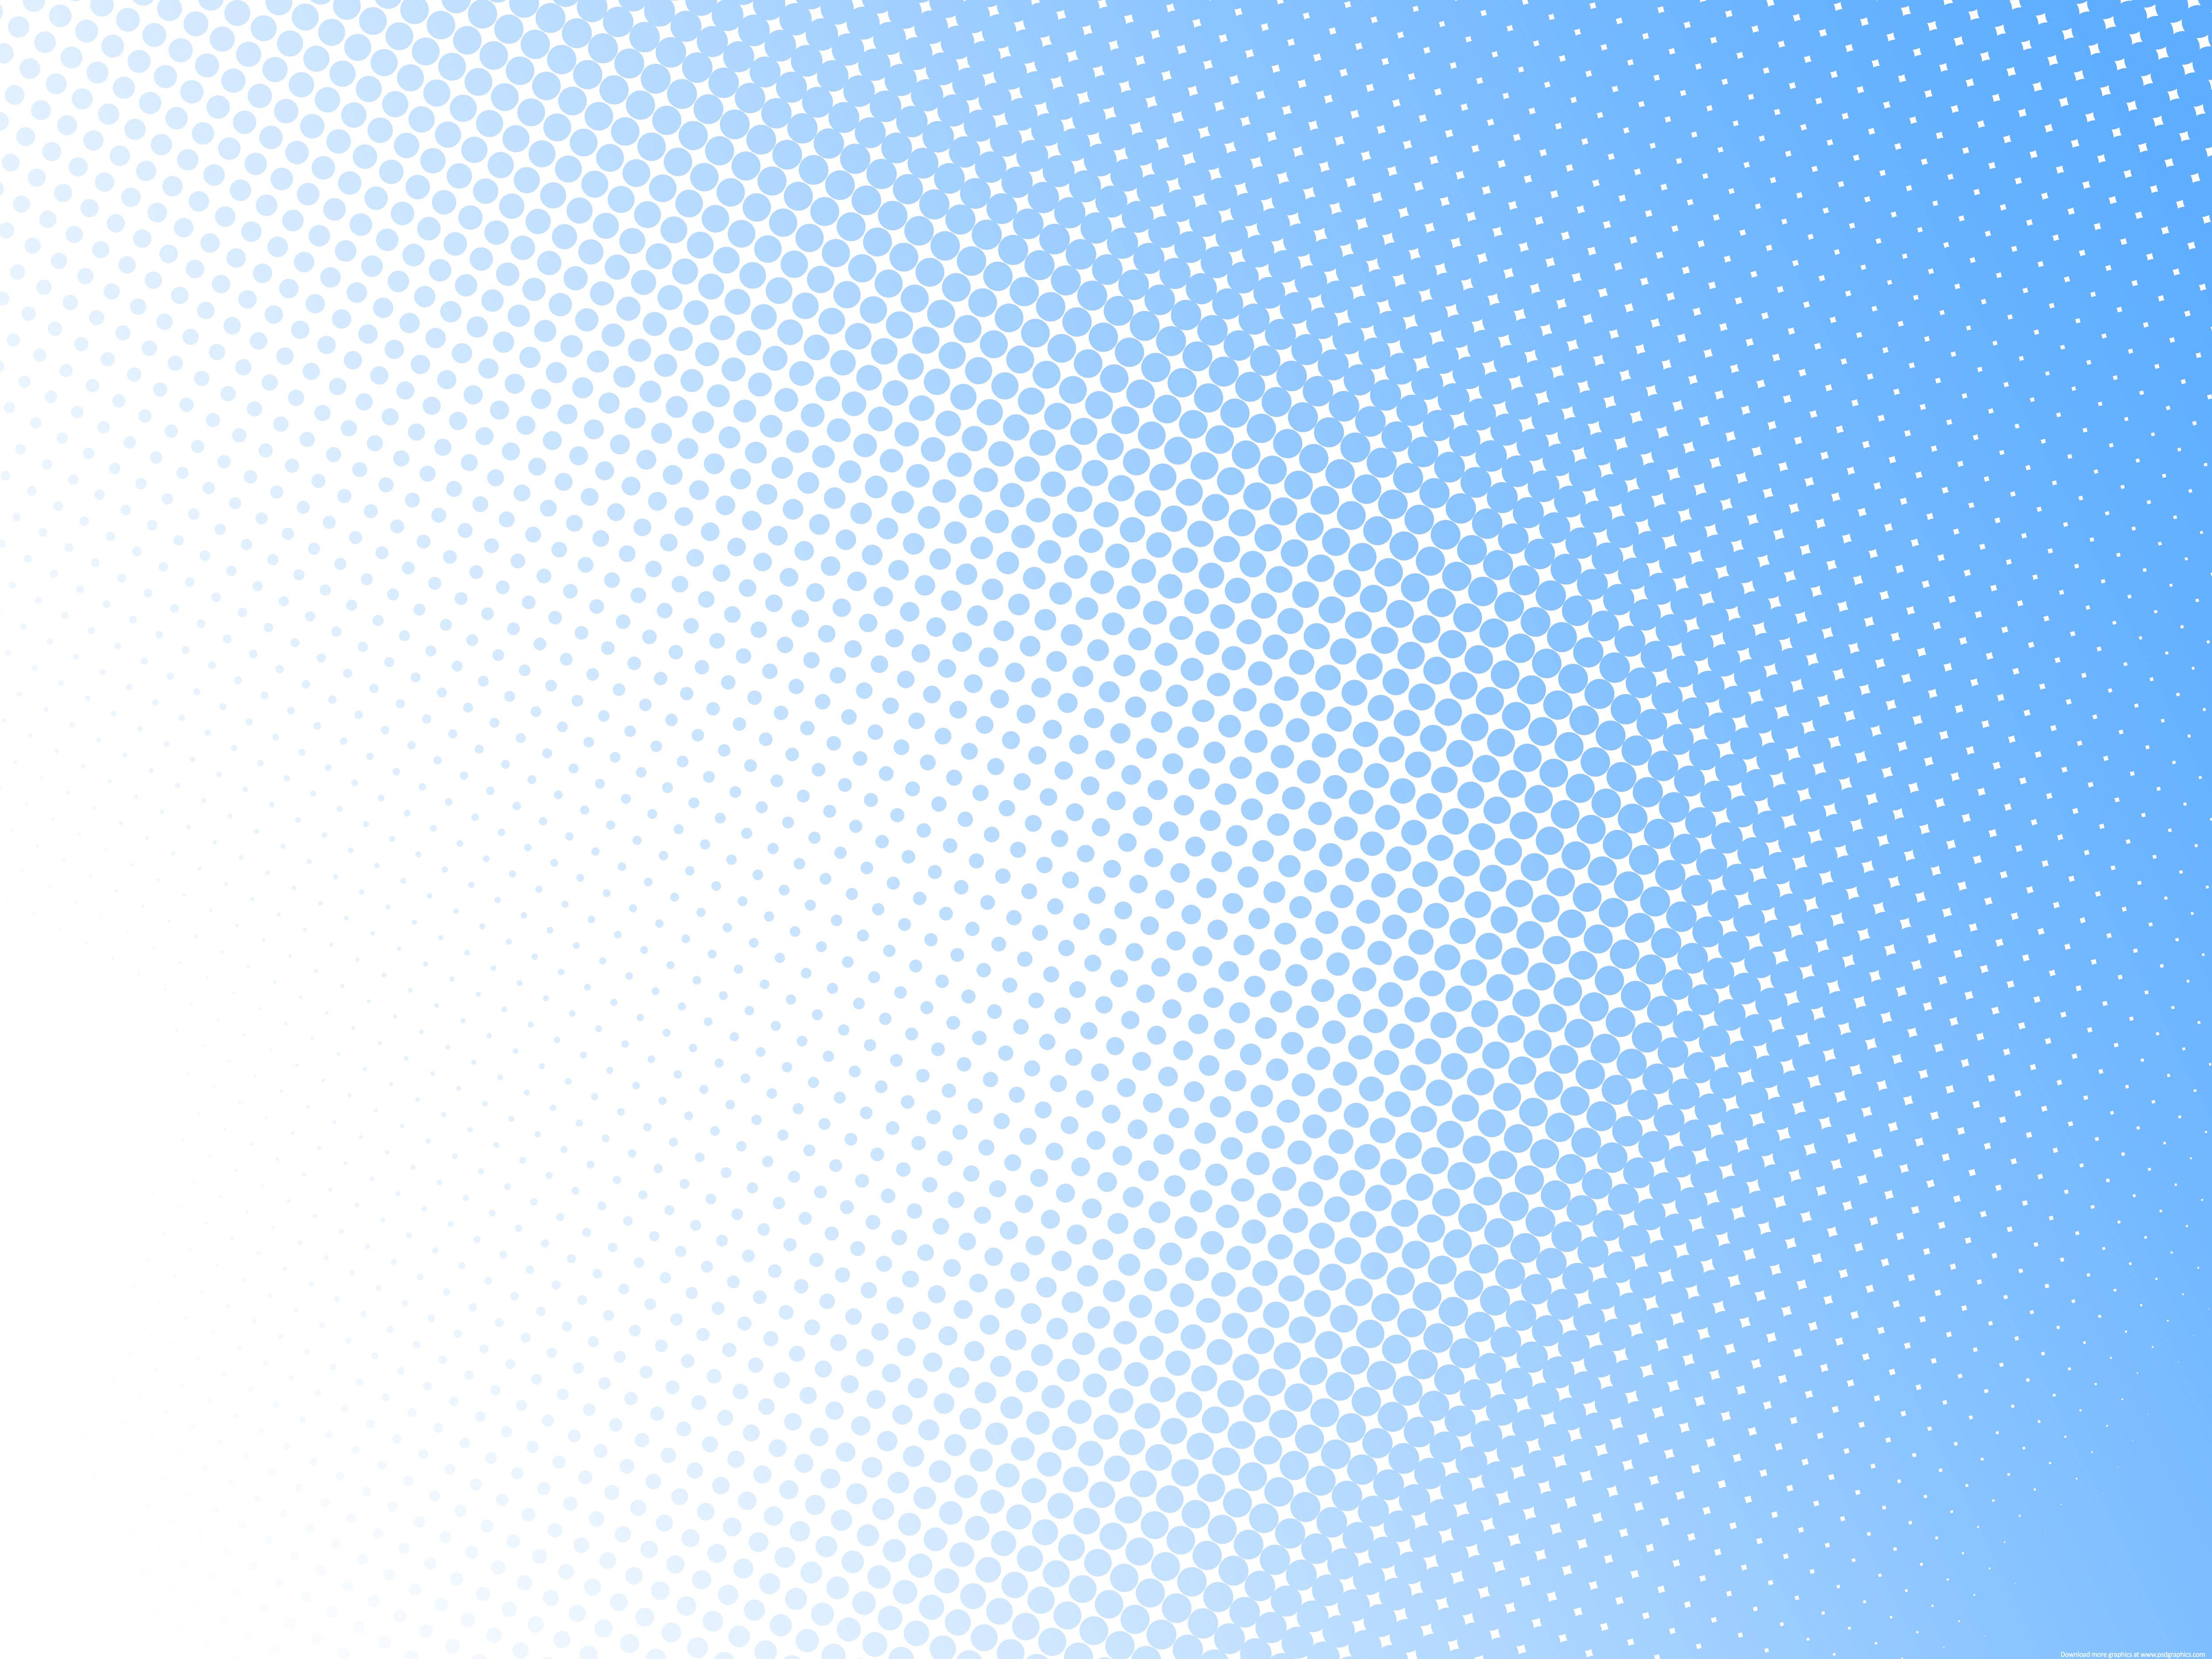 template, Light blue and white color transition background #3749